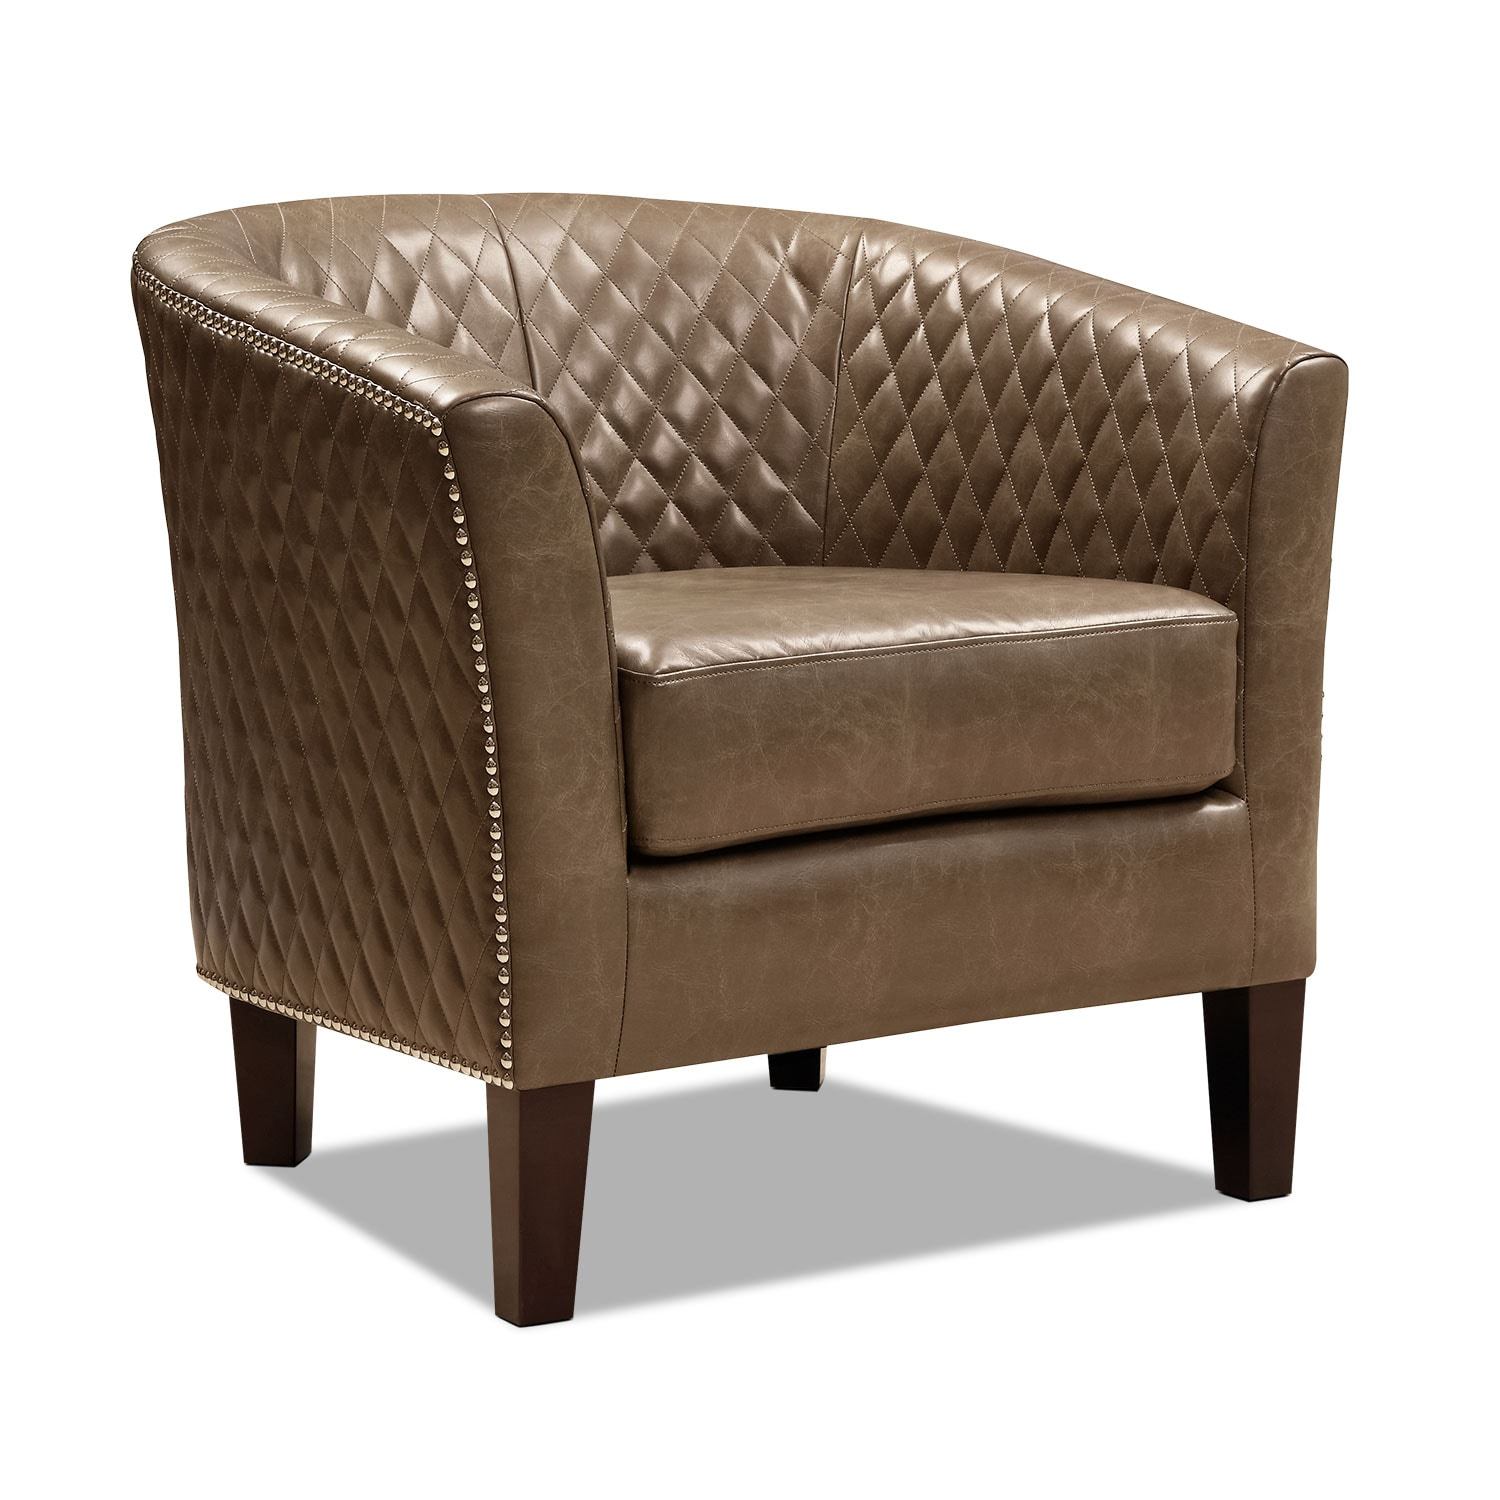 Accent Dining Room Chairs: Luxor Accent Chair - Brown